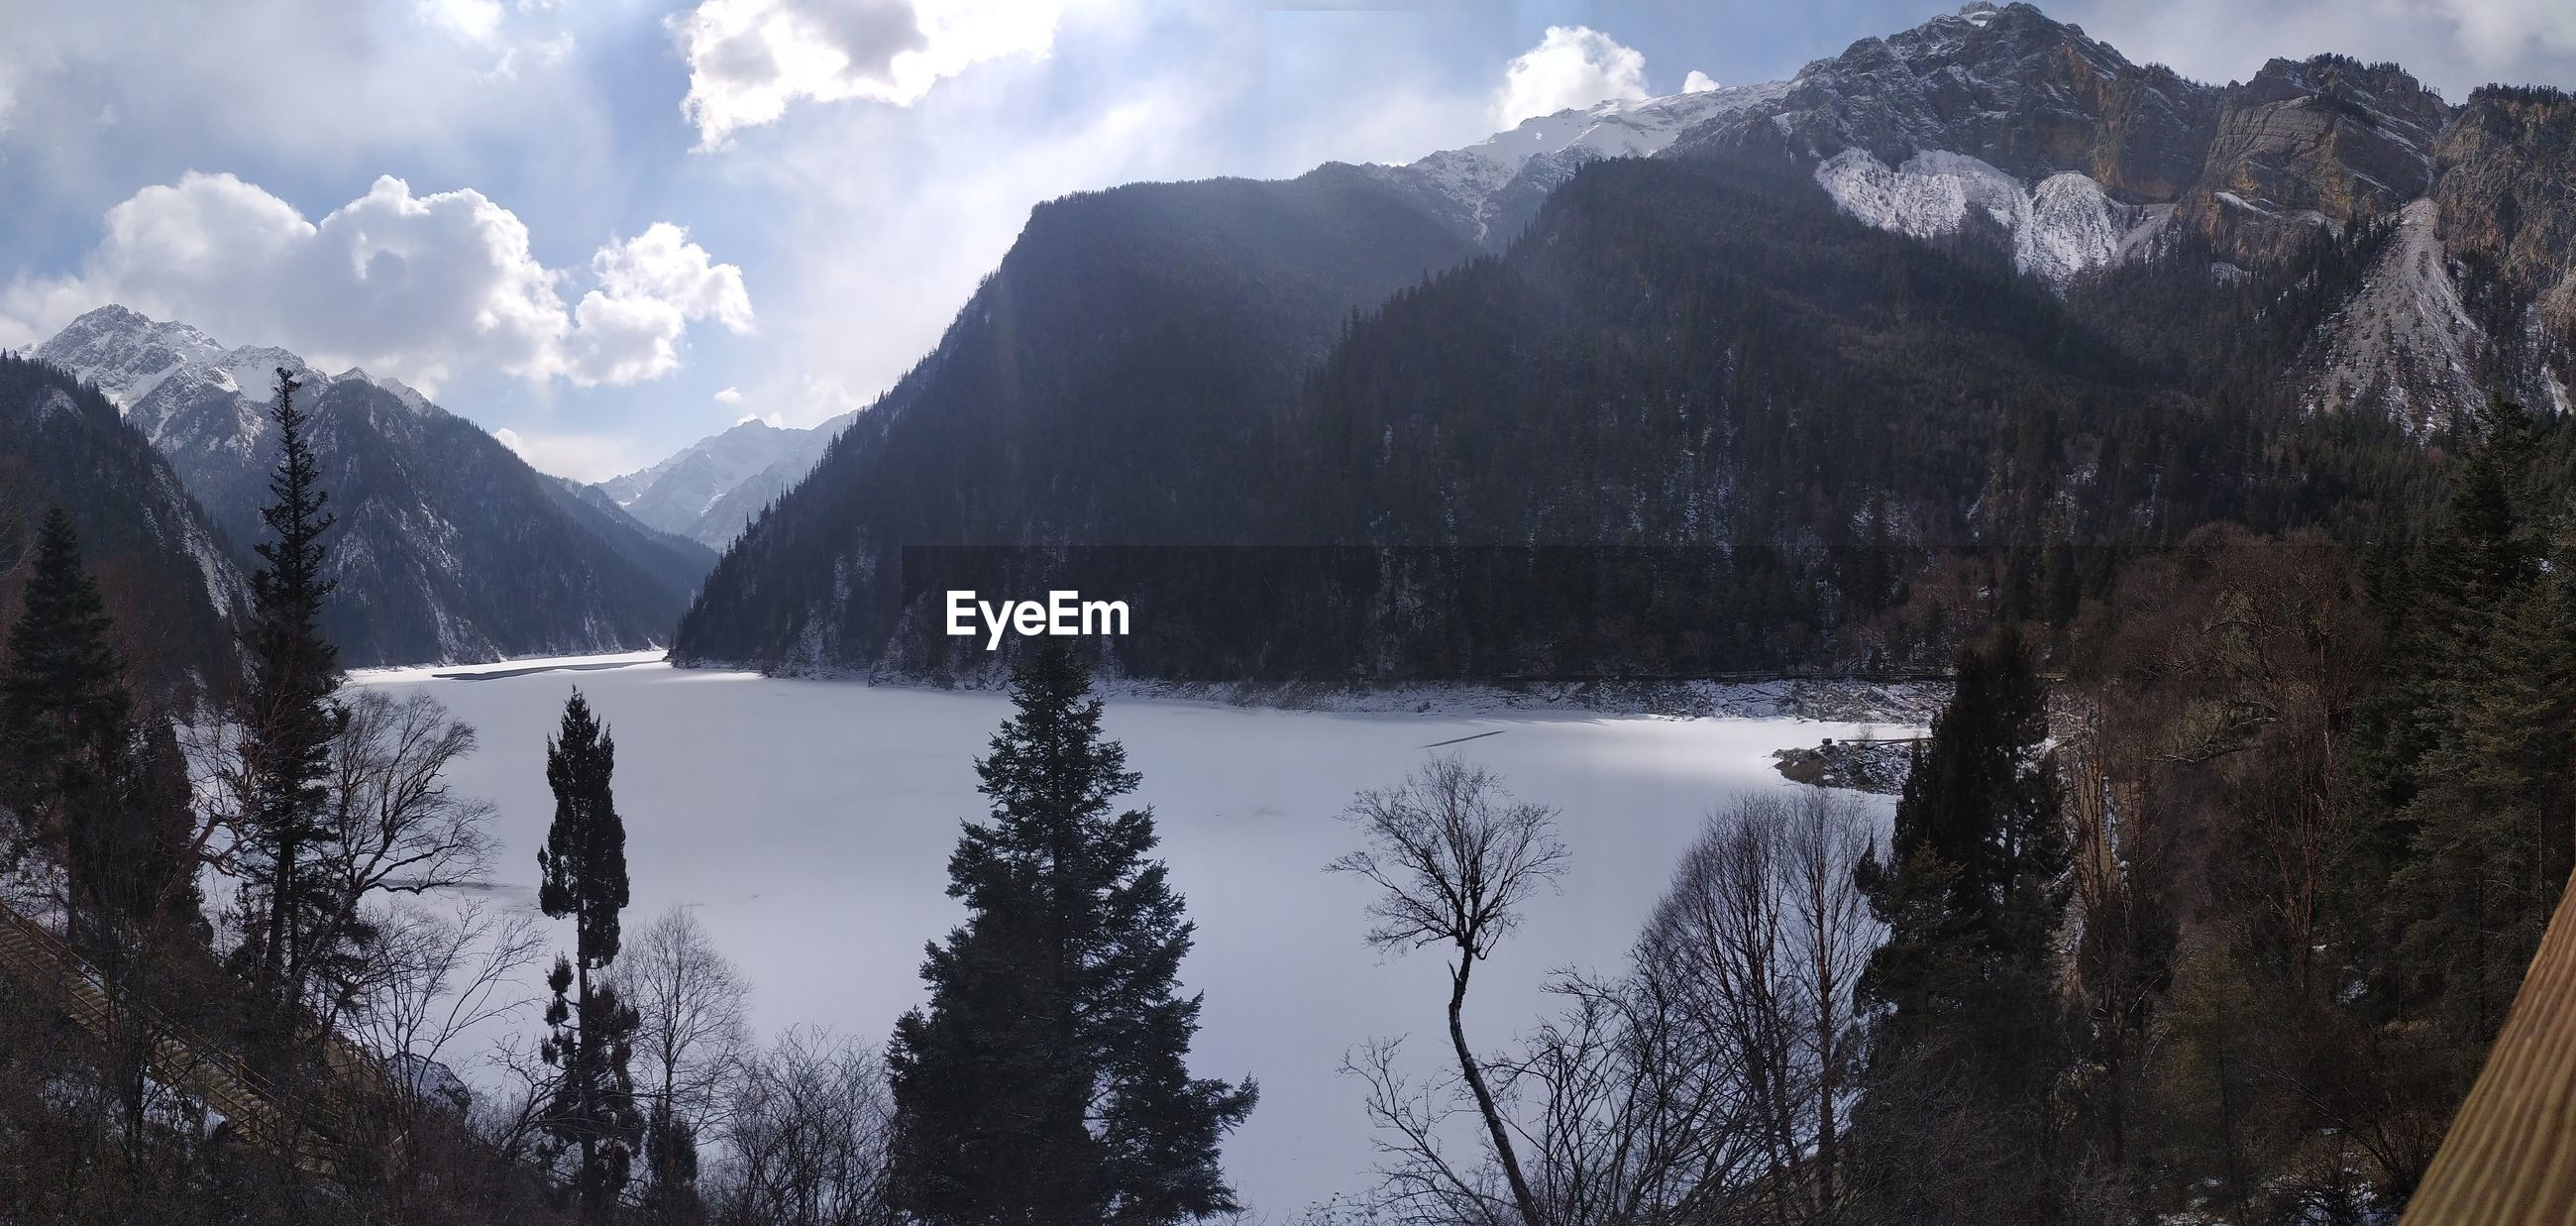 SCENIC VIEW OF MOUNTAINS AND RIVER AGAINST CLOUDY SKY